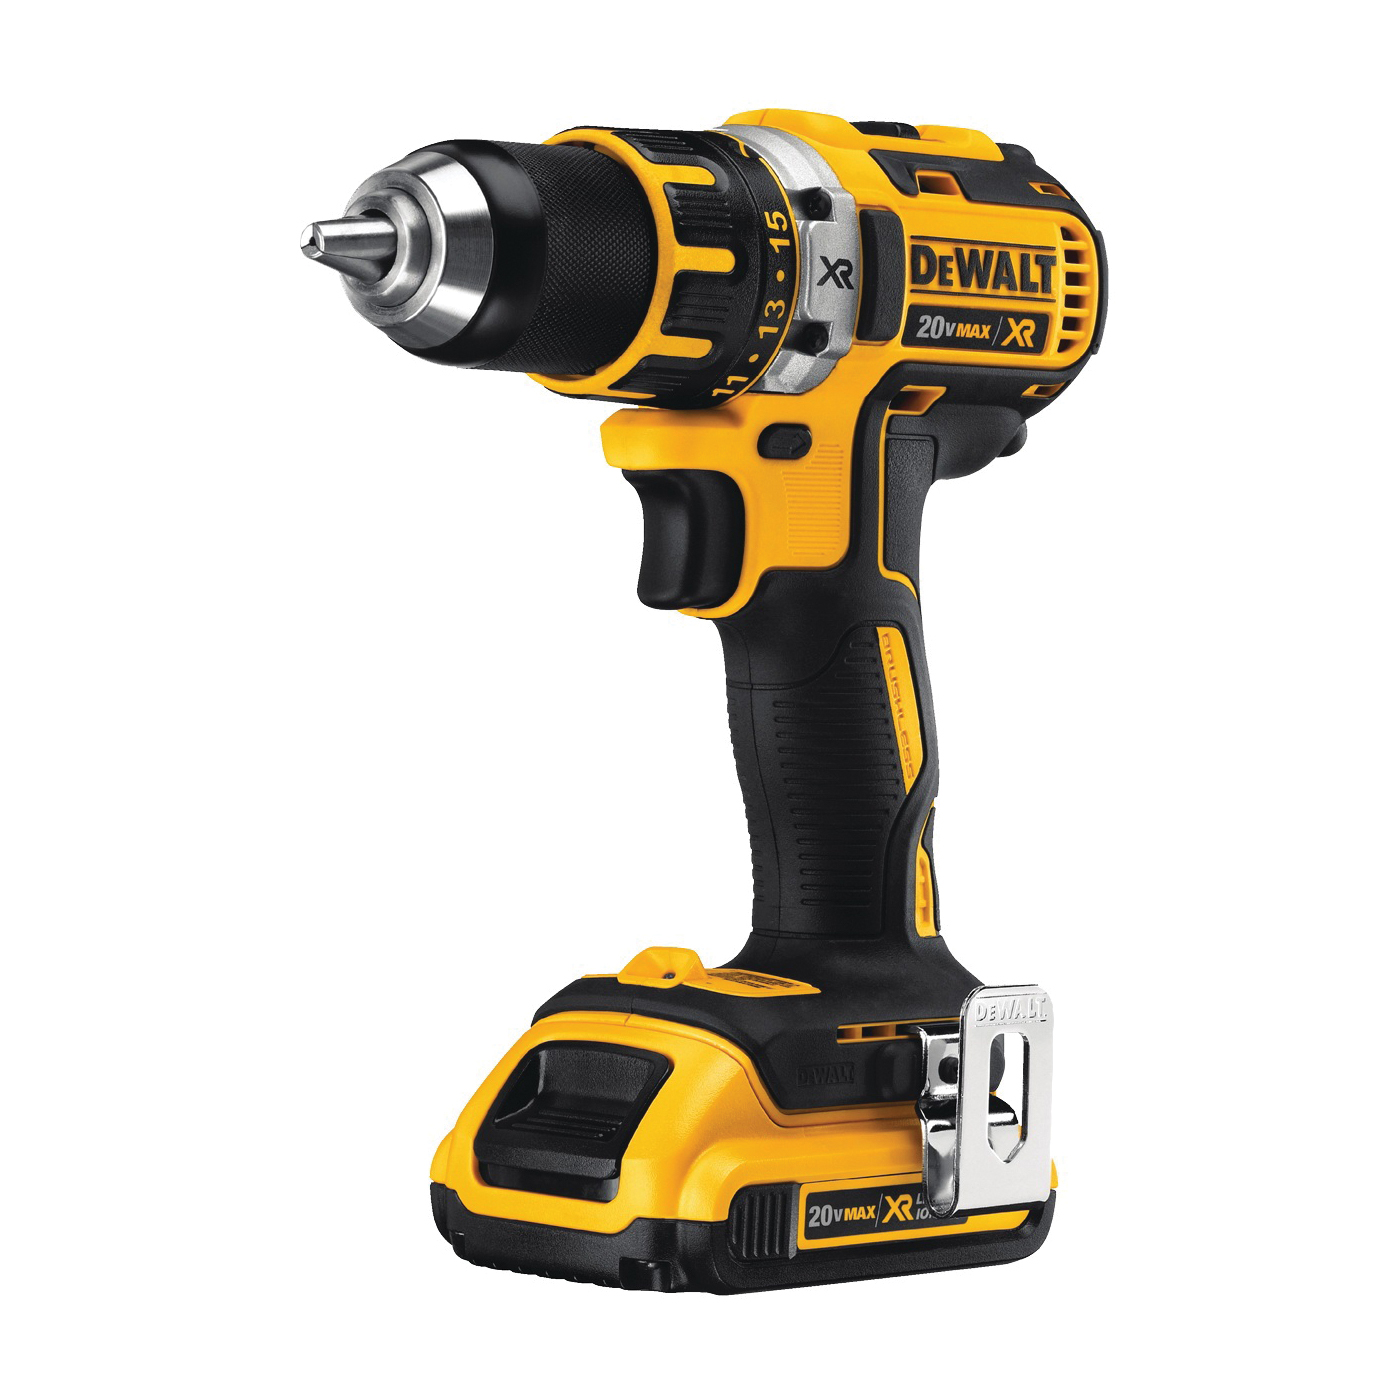 Picture of DeWALT DCD791D2/DCD790D2 Drill/Driver Kit, Kit, 20 V Battery, 1/2 in Chuck, Ratcheting Chuck, Battery Included: Yes